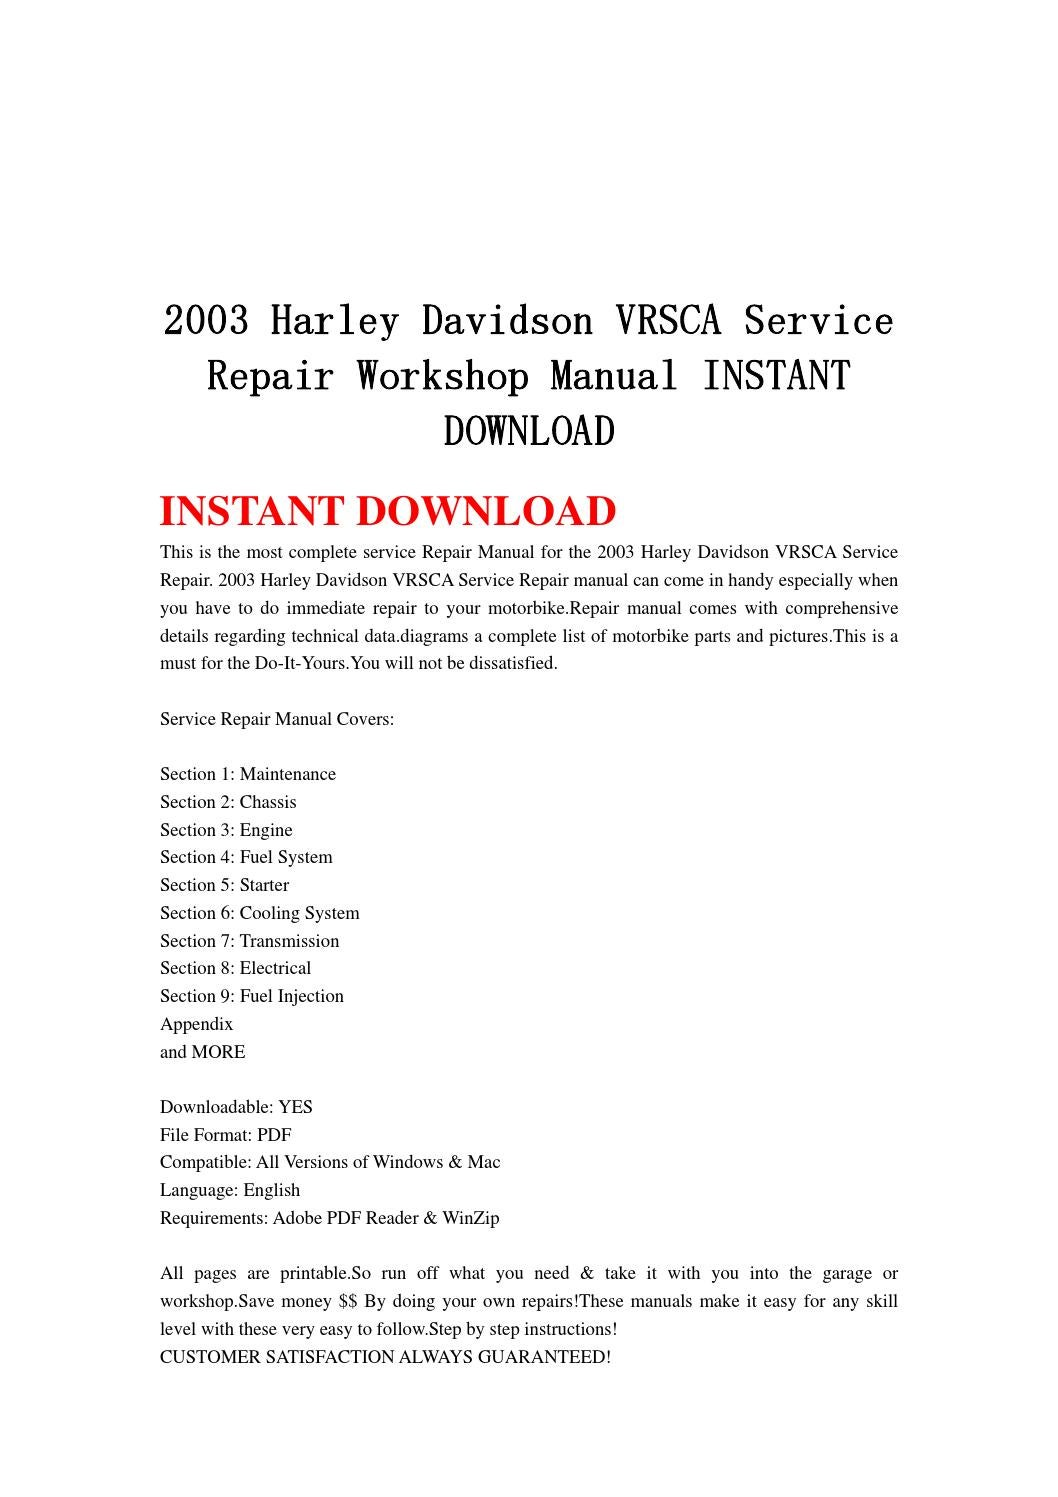 hight resolution of 2003 harley davidson vrsca service repair workshop manual instant download by hytggse issuu